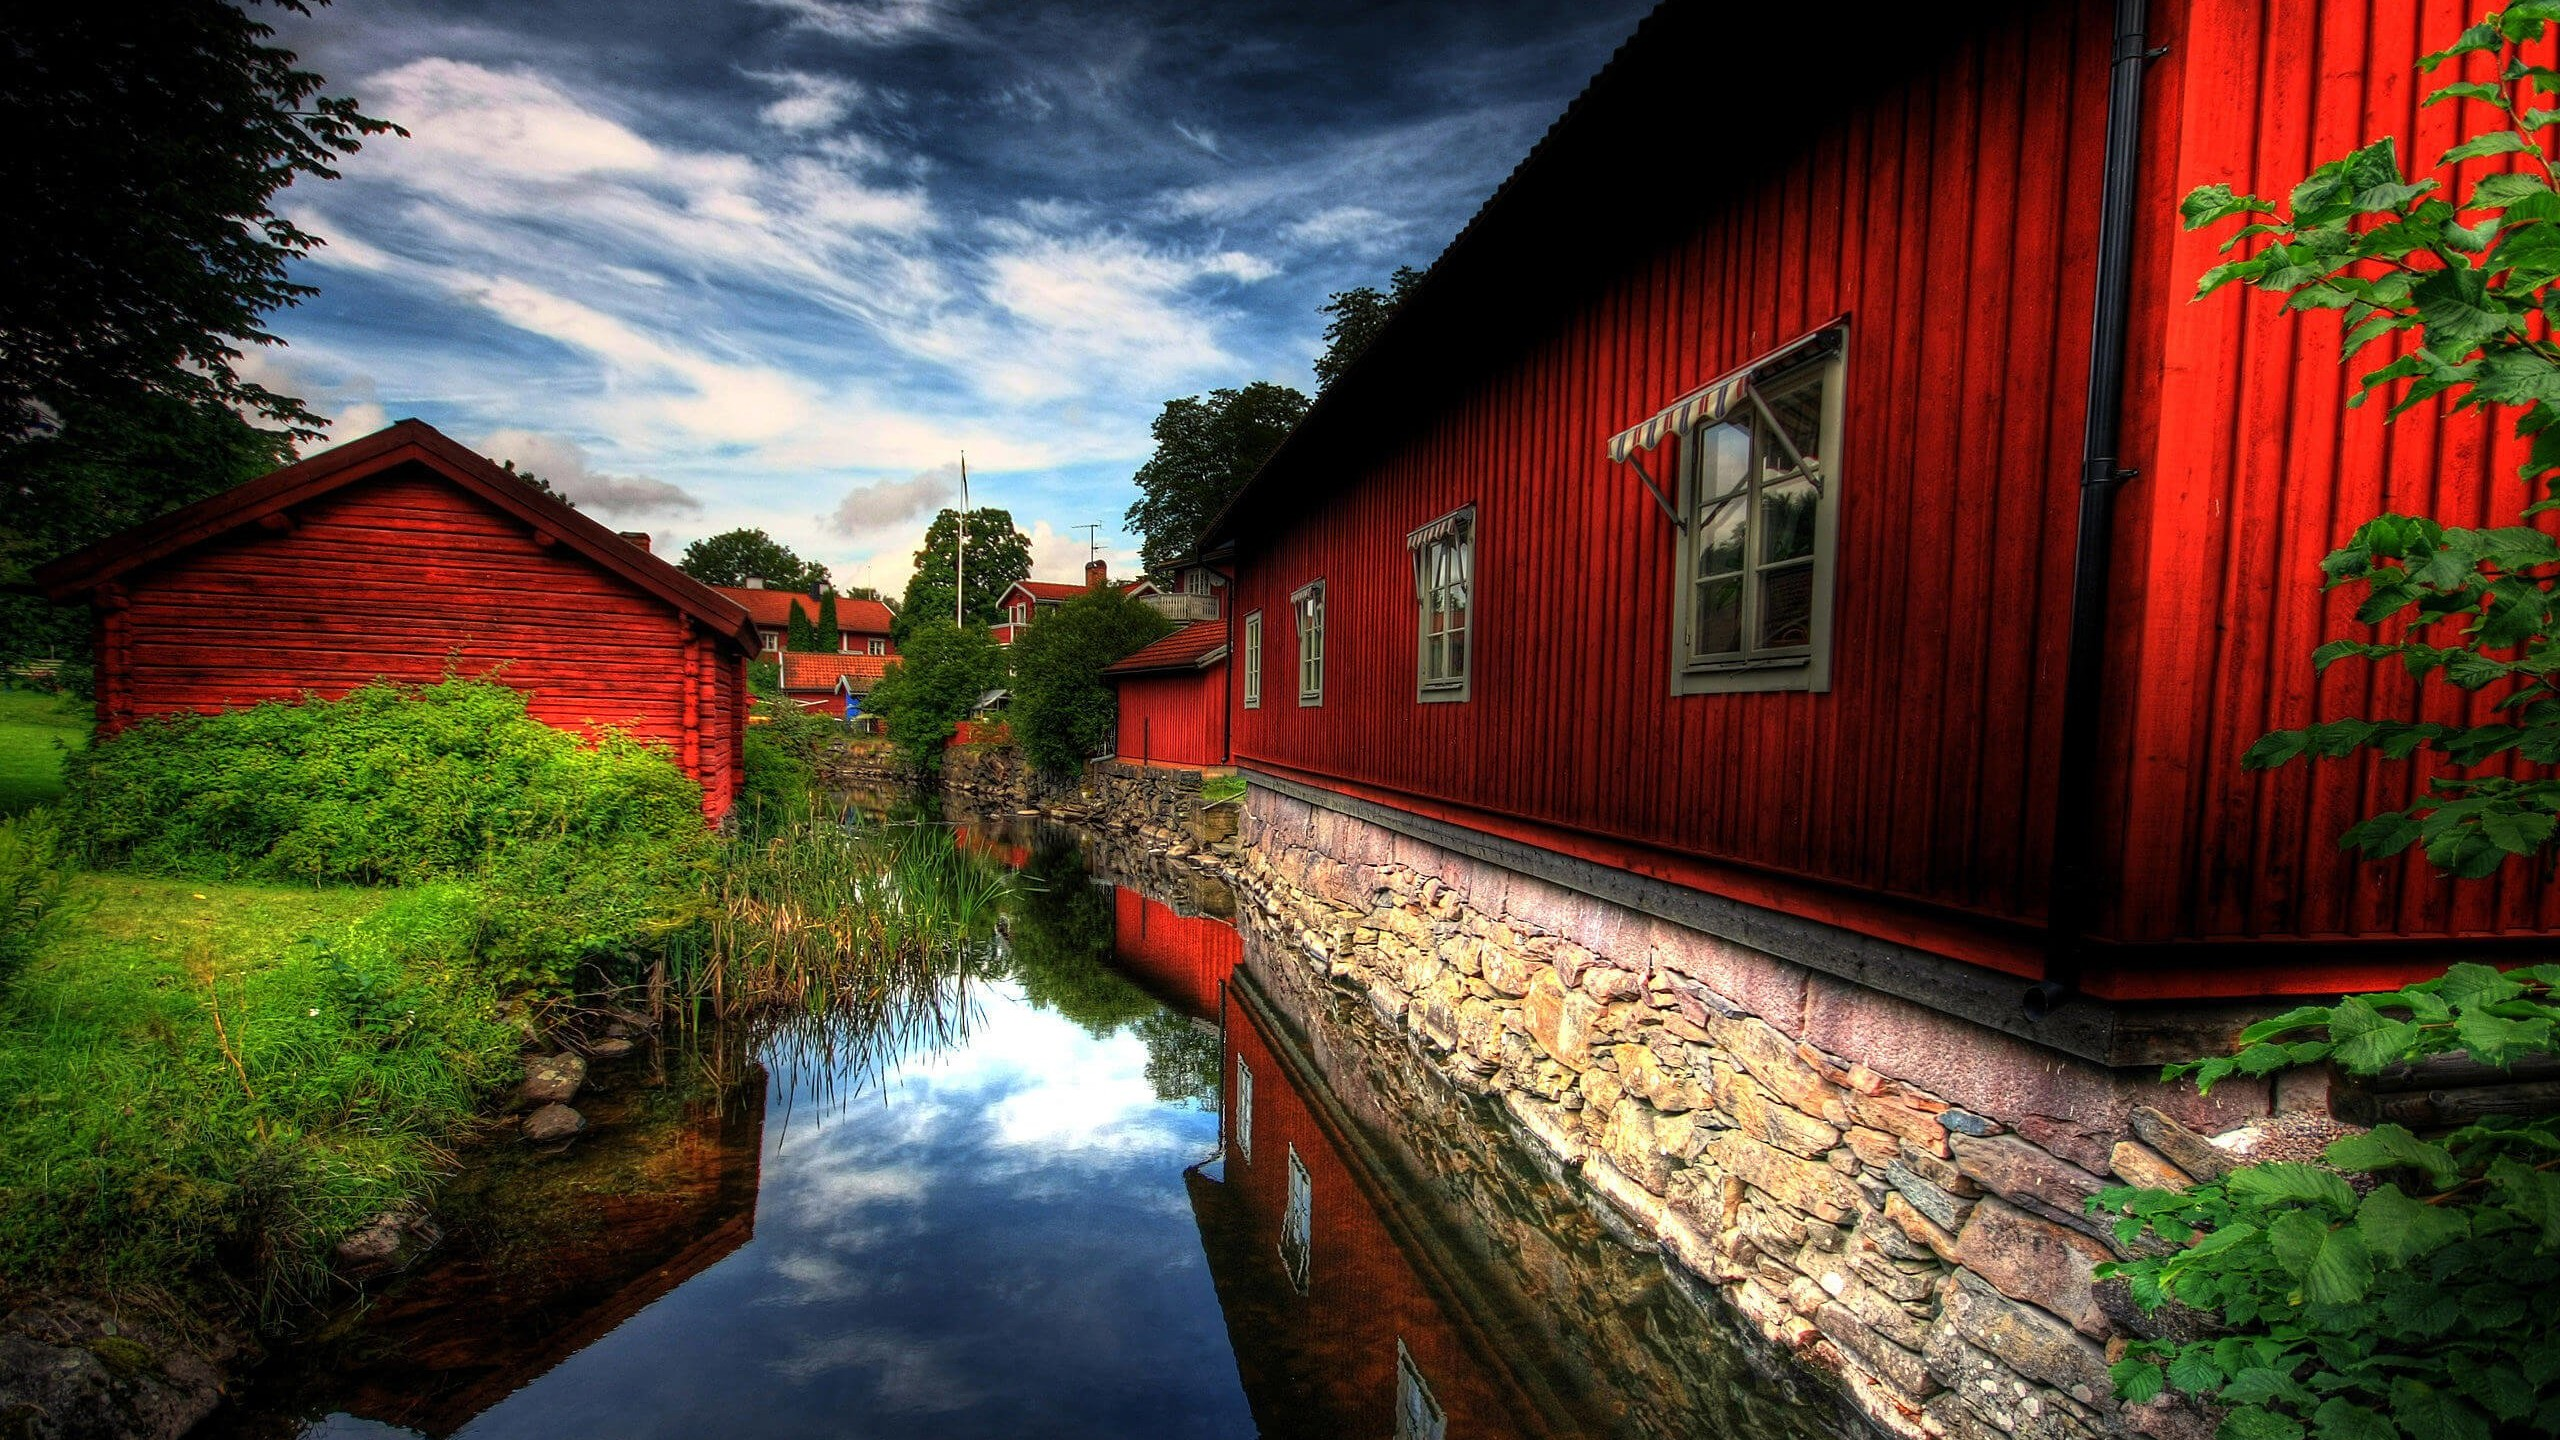 Red Village, Norberg, Sweden Wallpaper for Social Media YouTube Channel Art